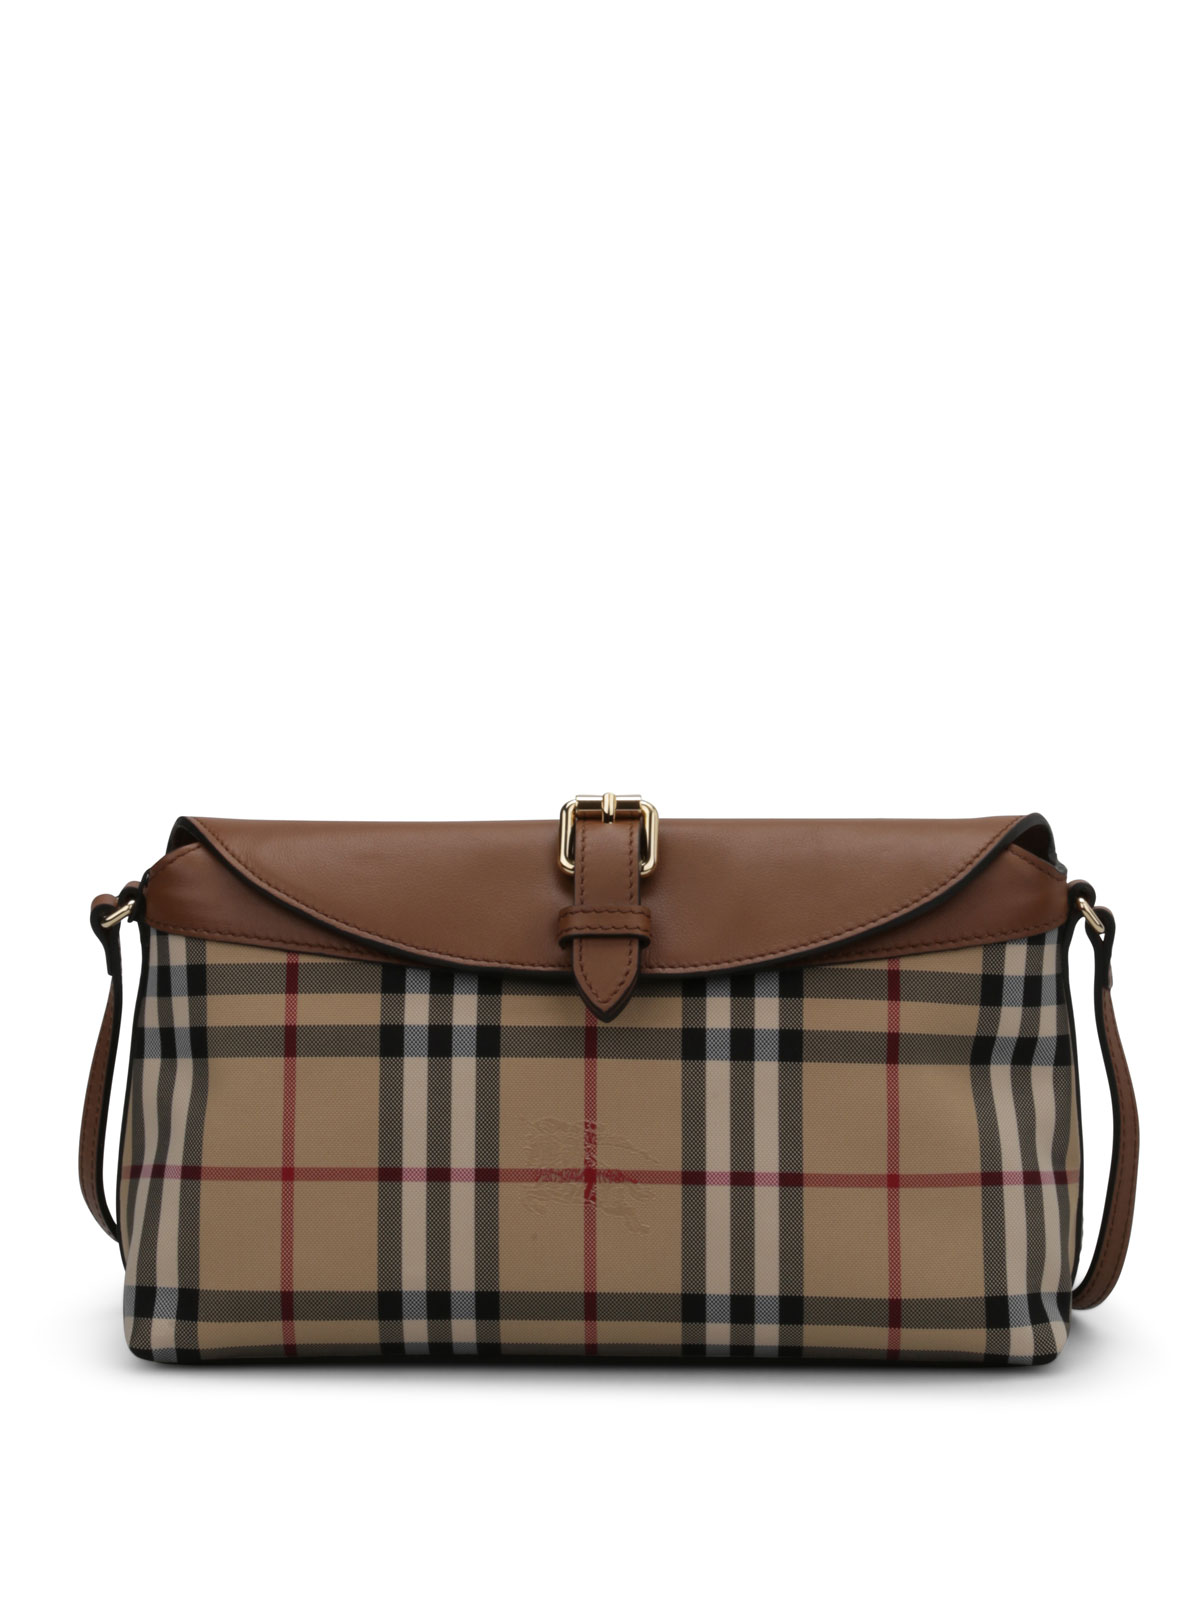 Burberry - Horseferry Check-Leather Leah bag - cross body